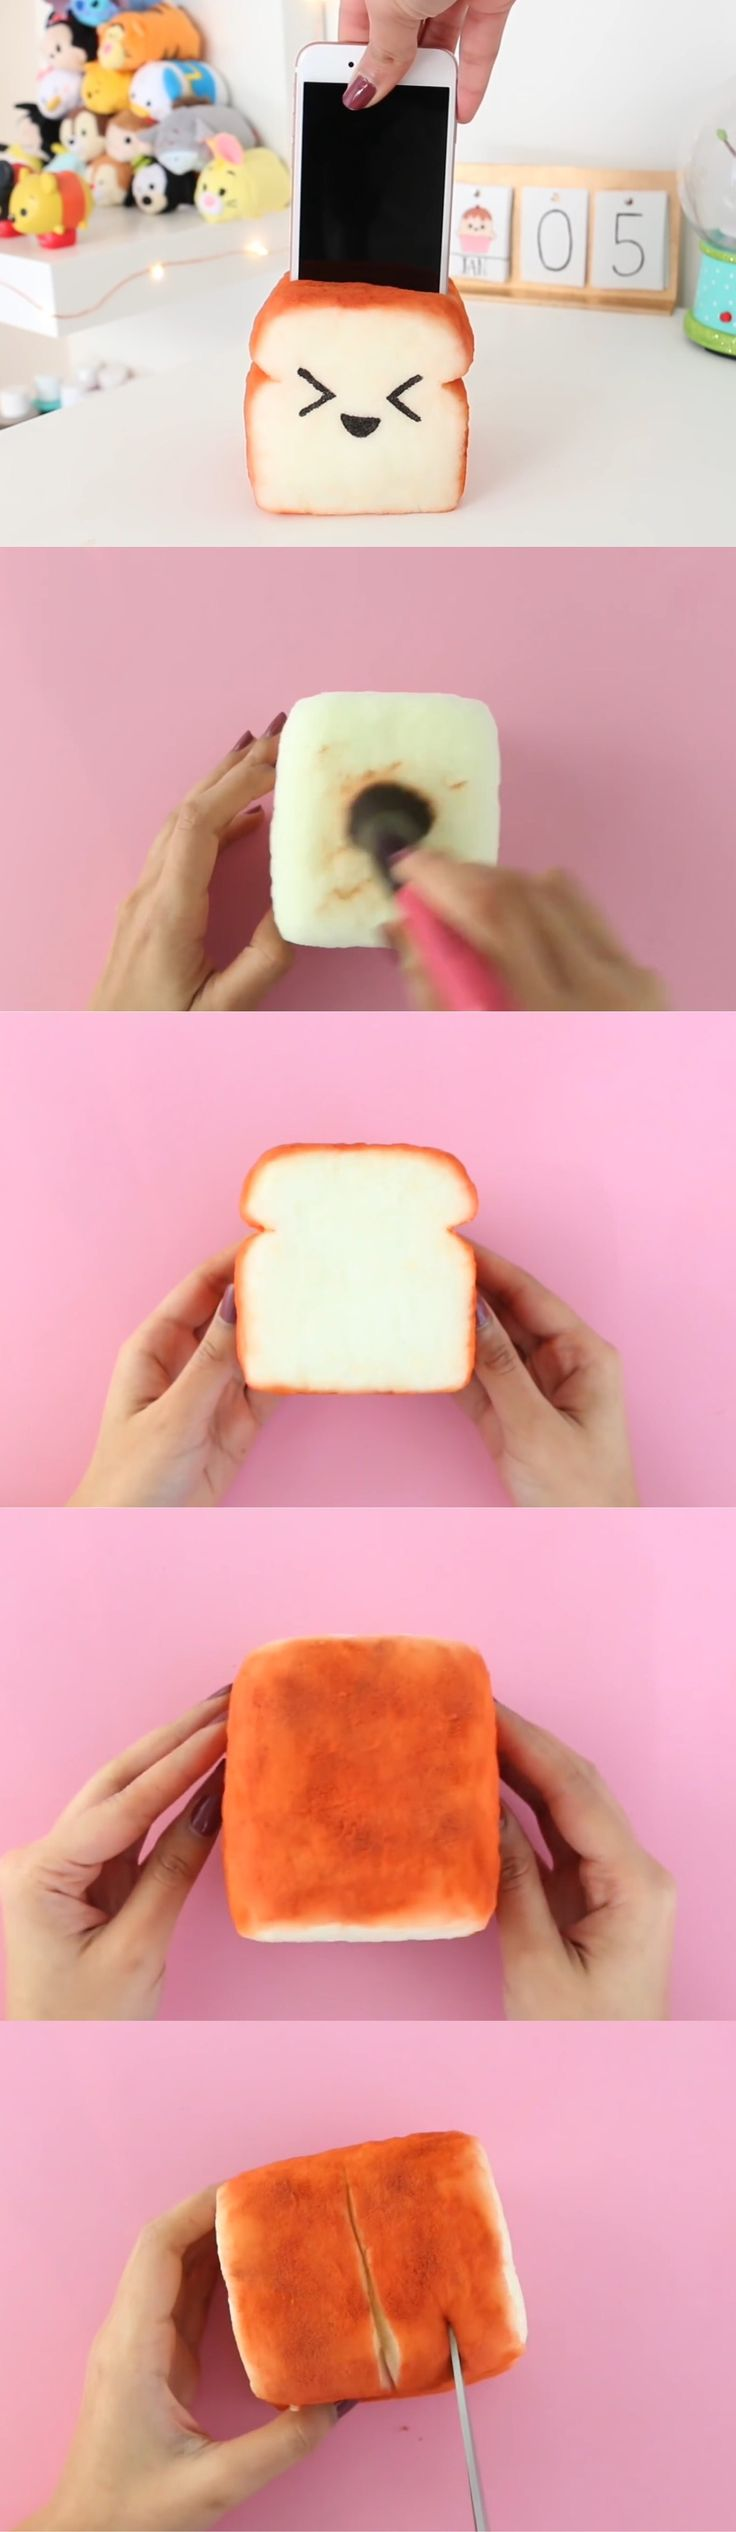 Squishy Animals For Phone : Toast Squishy/Phone holder Part 3Nim C Diy ideas Pinterest Jungle animals, Crafts for ...